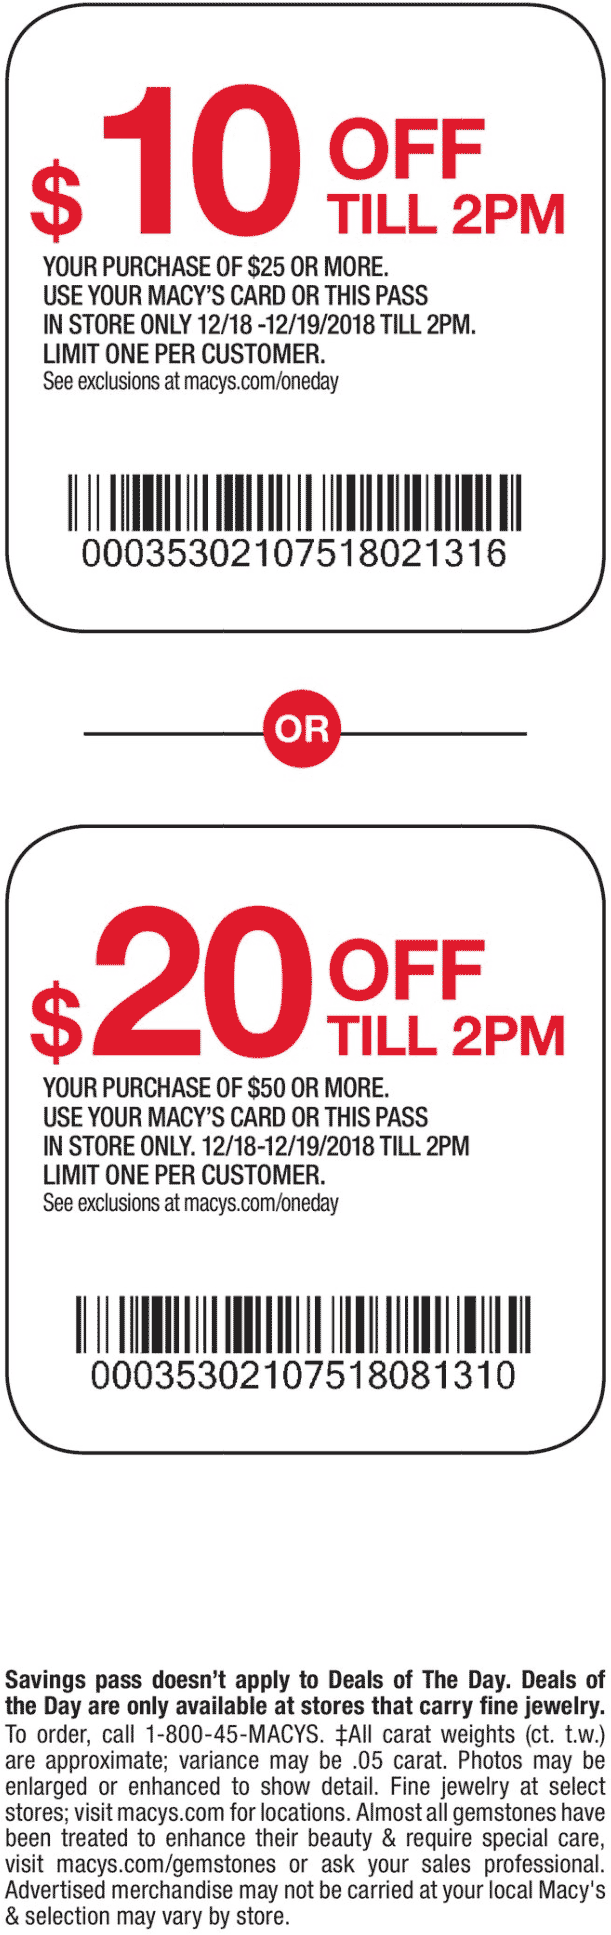 Macys Coupon July 2020 $10 off $25 & more til 2p at Macys